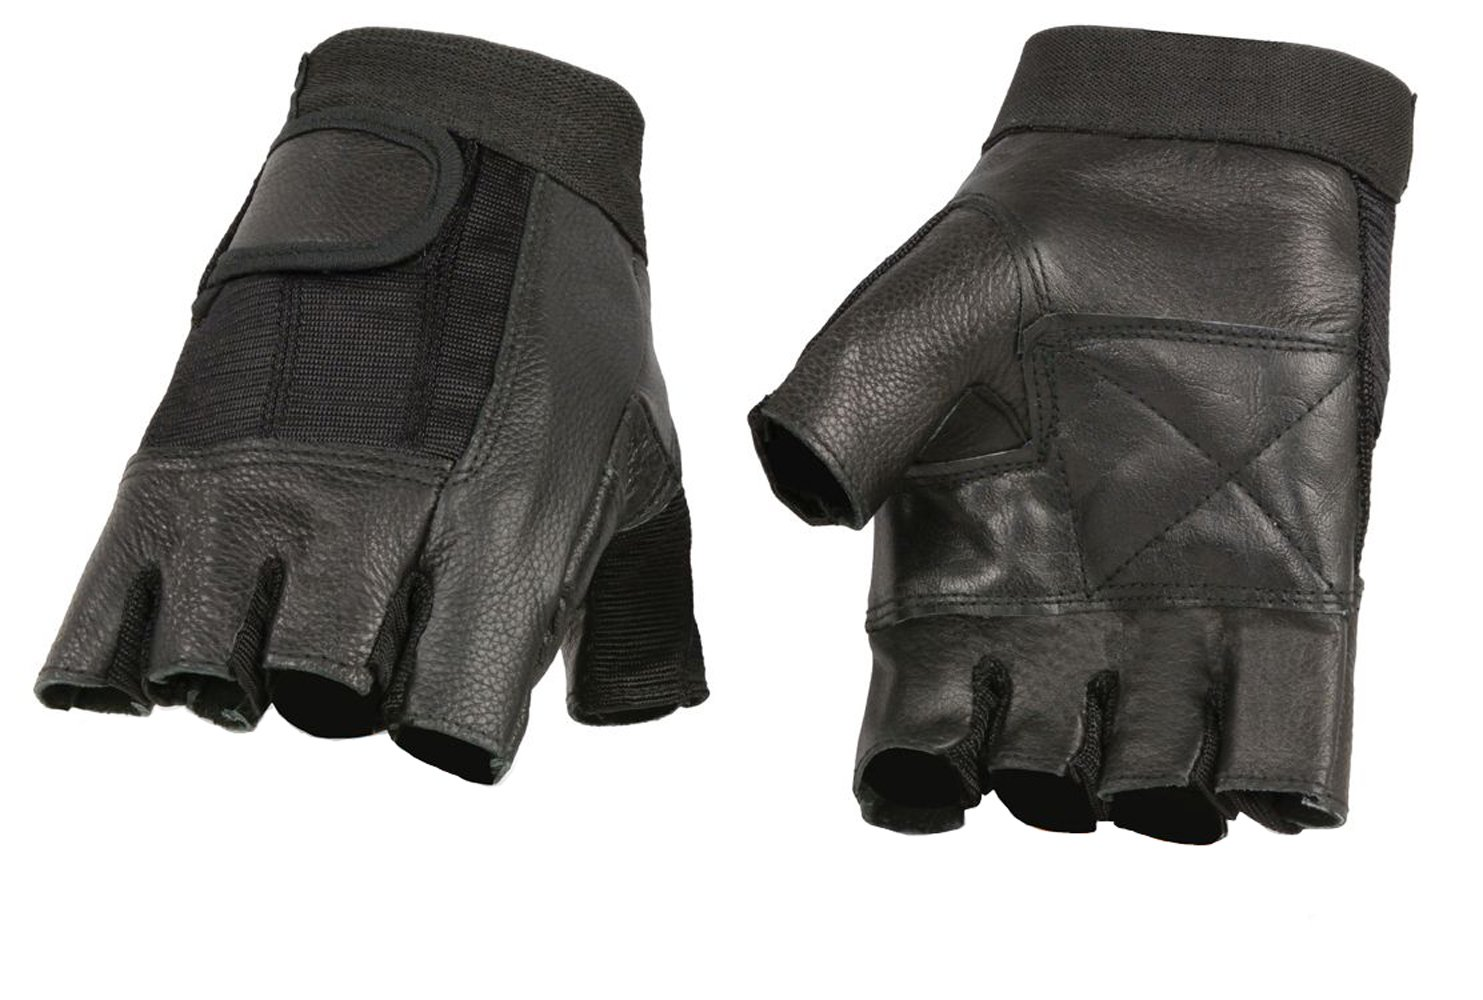 Ted and Jack Fingerless Leather Glove Rhino Grip 2.0 Weightlifitng//Motorcycle